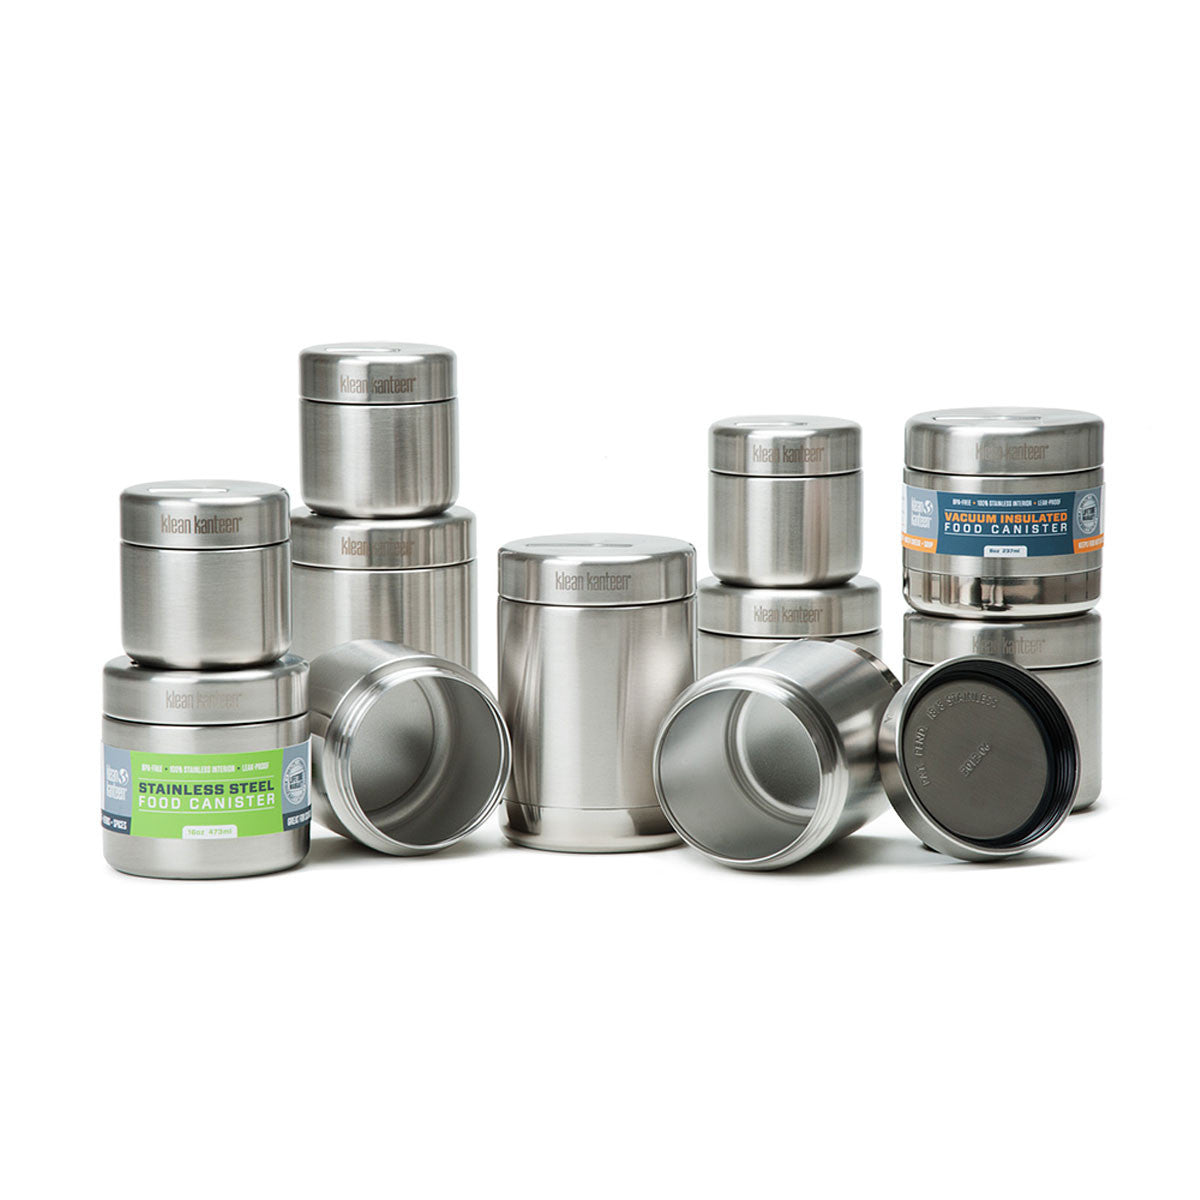 Klean Kanteen Stainless Steel Food Jar Klean Kanteen Food Storage Containers 237ml / Single Wall at Little Earth Nest Eco Shop